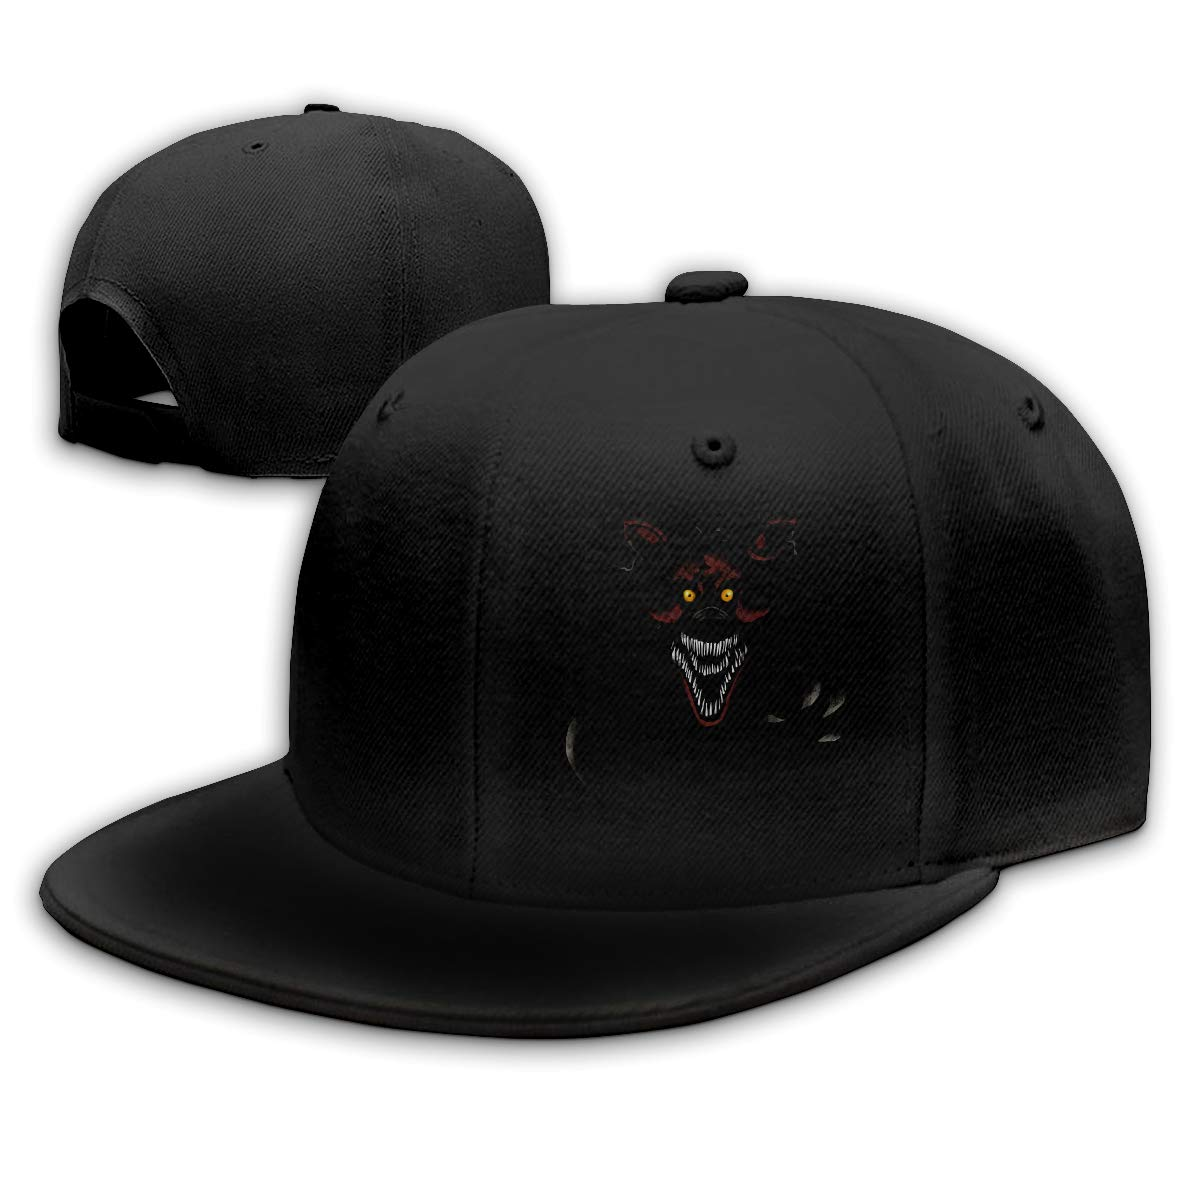 Five-Night-at-Freddy-Nightmare-Foxy-Alone-by-Kaizerin Adjustable Denim Hats